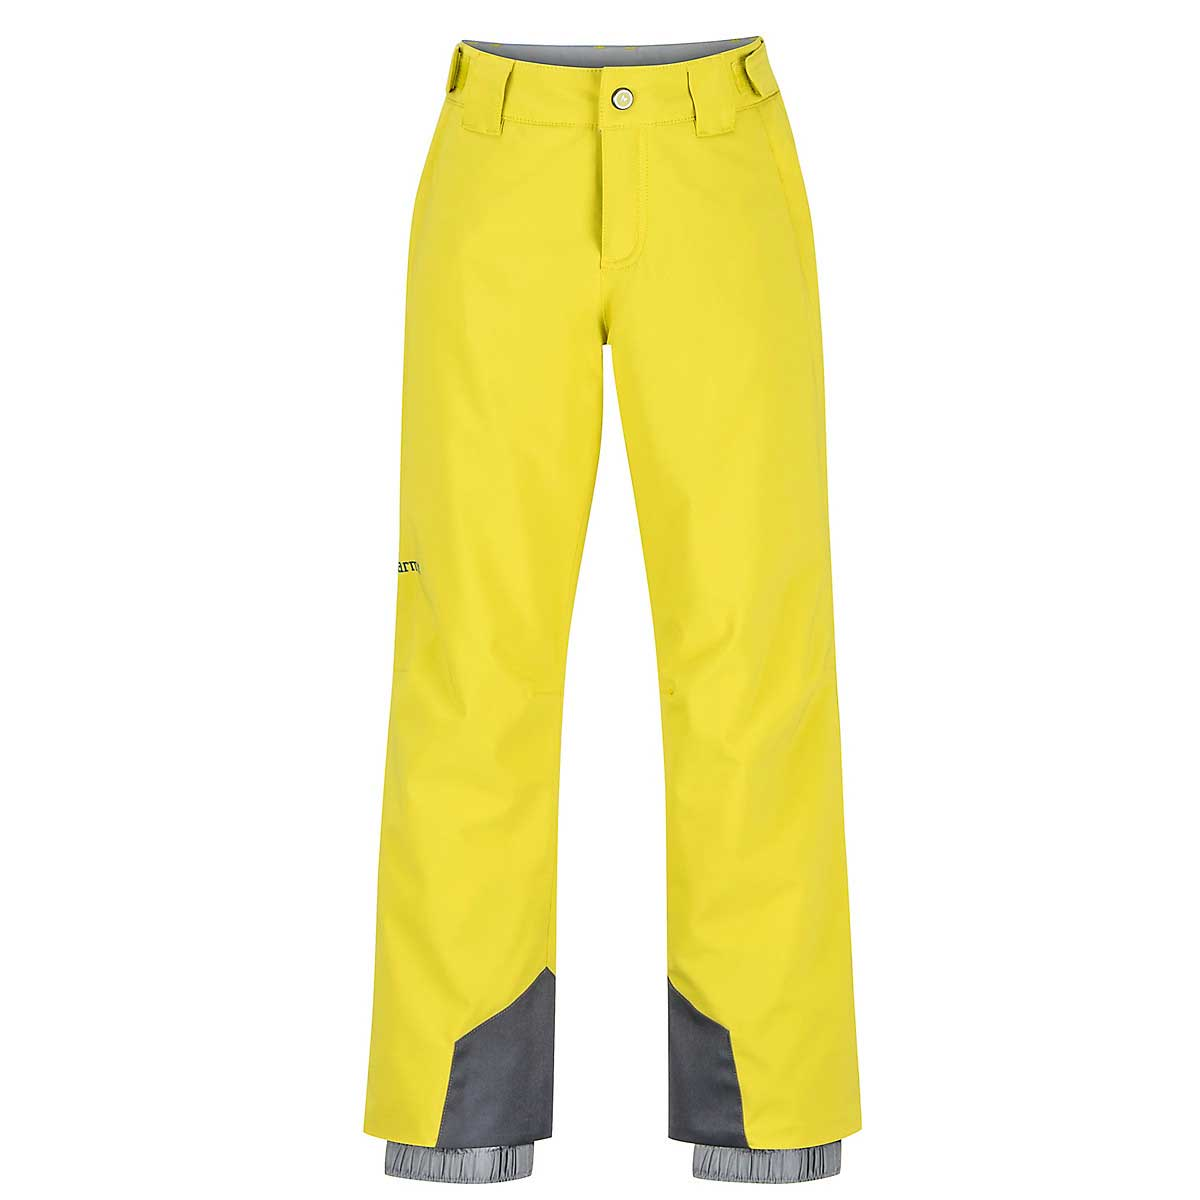 Marmot Boys' Vertical Pant in Citronelle